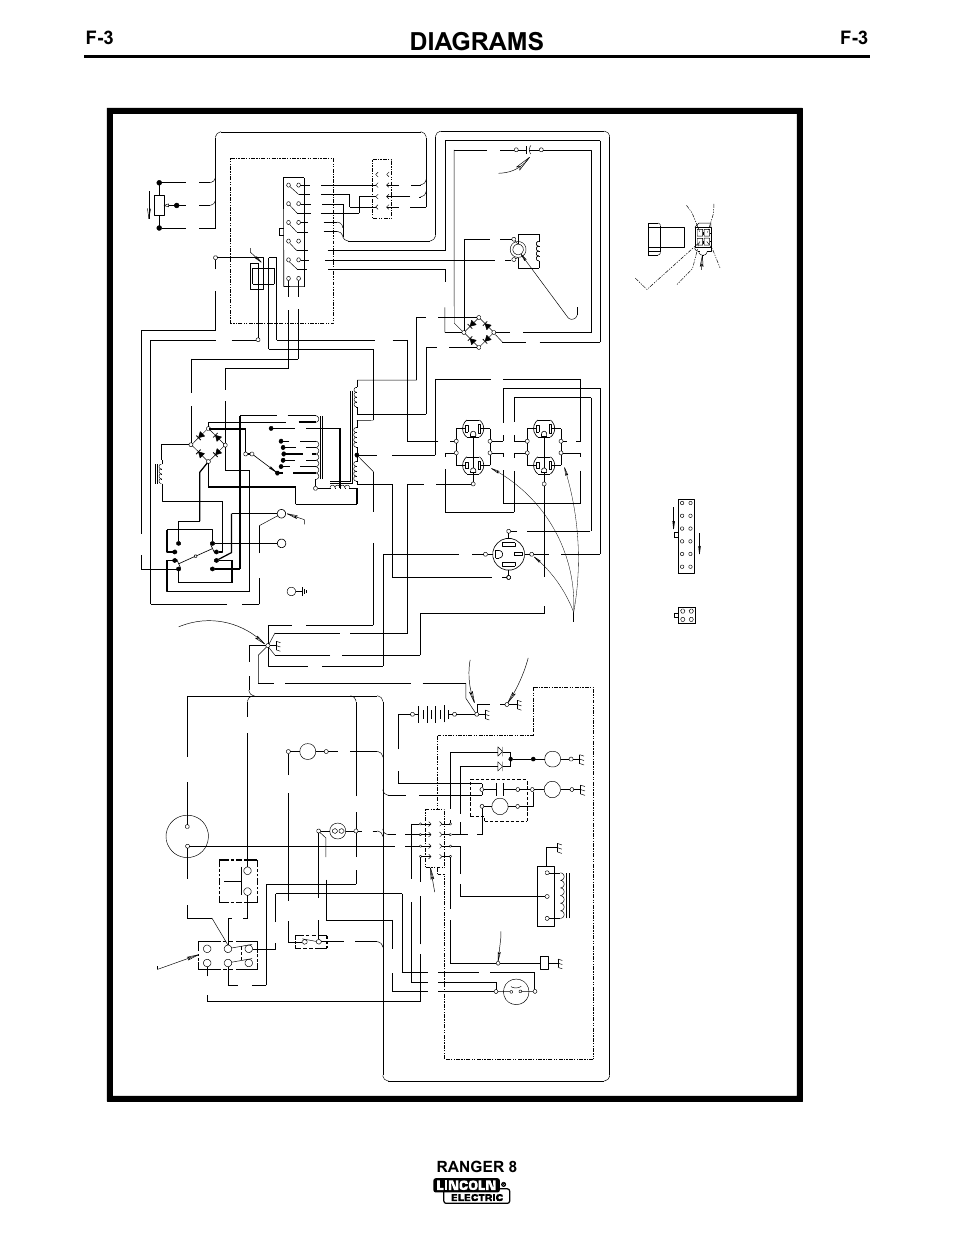 Lincoln Ranger 8 Wiring Diagram 9 On Fuel System